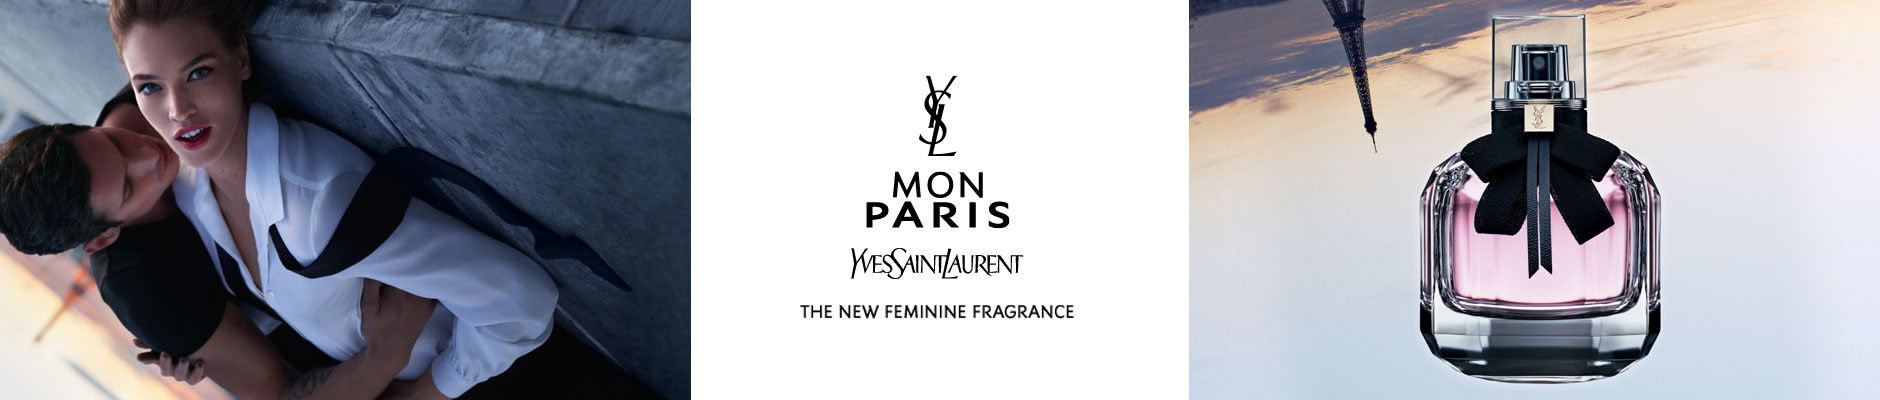 Mon Paris: Yves Saint Laurent - The new feminine fragrance